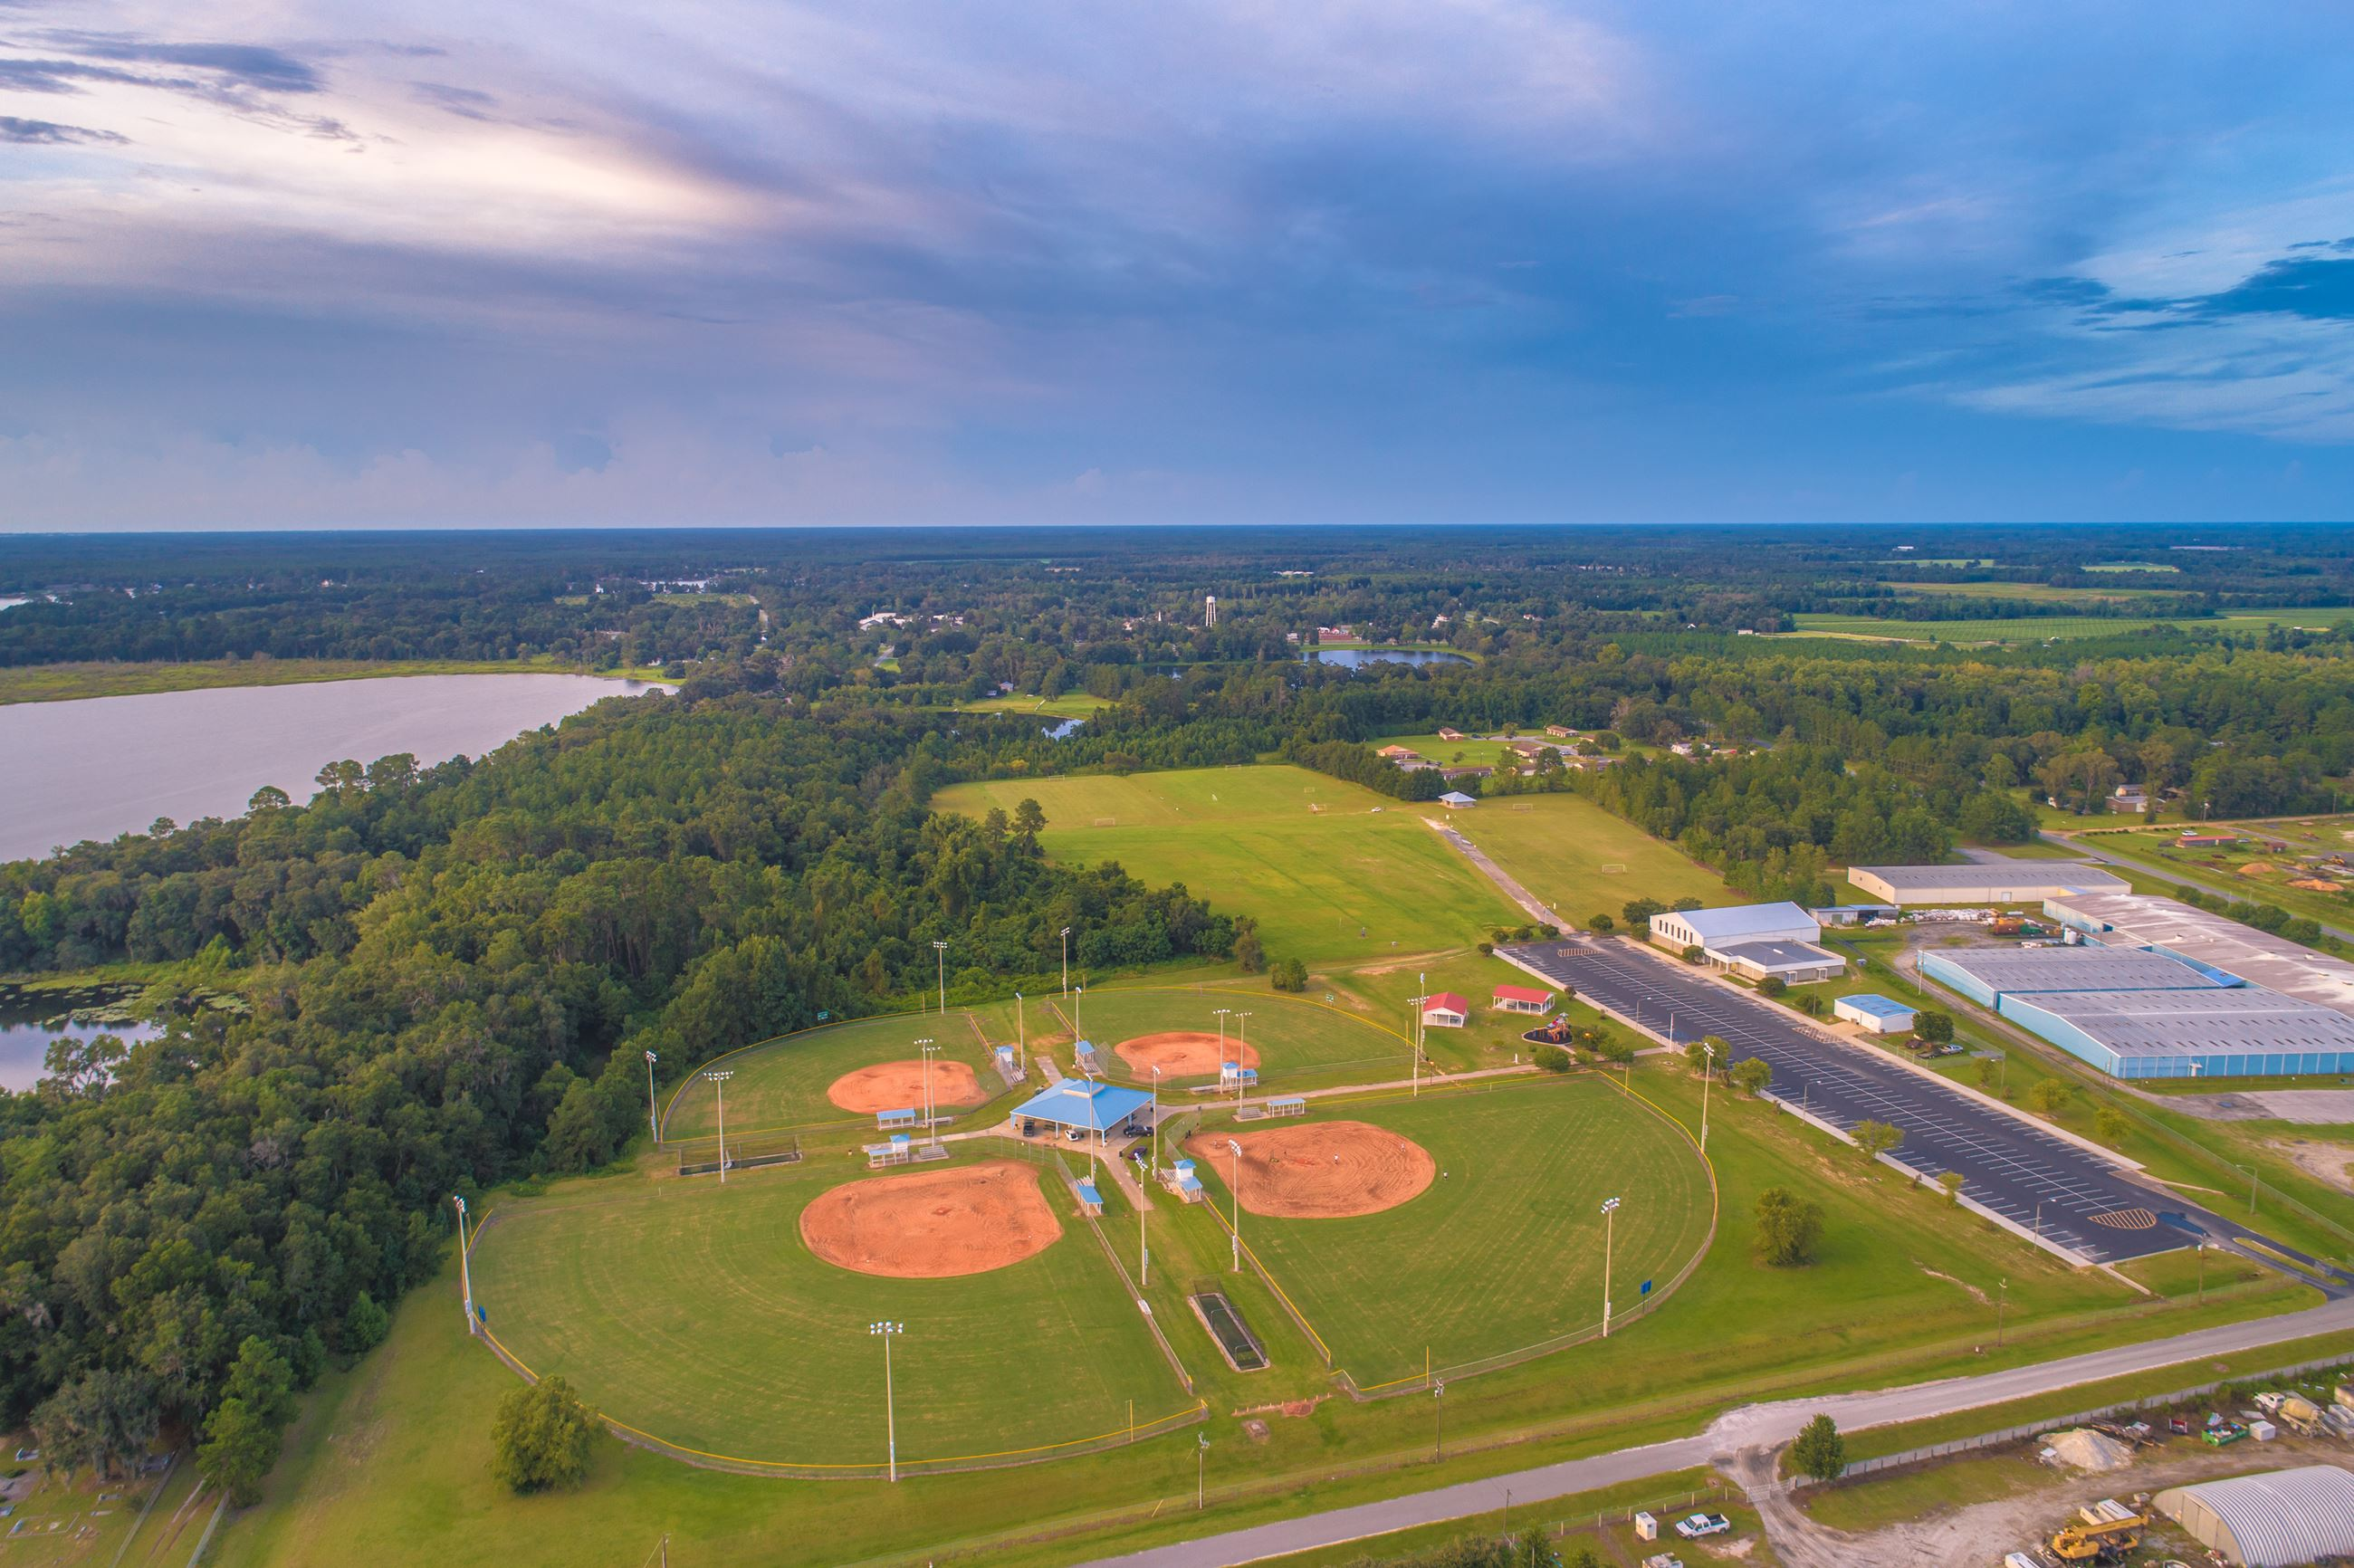 An image of four baseball fields.